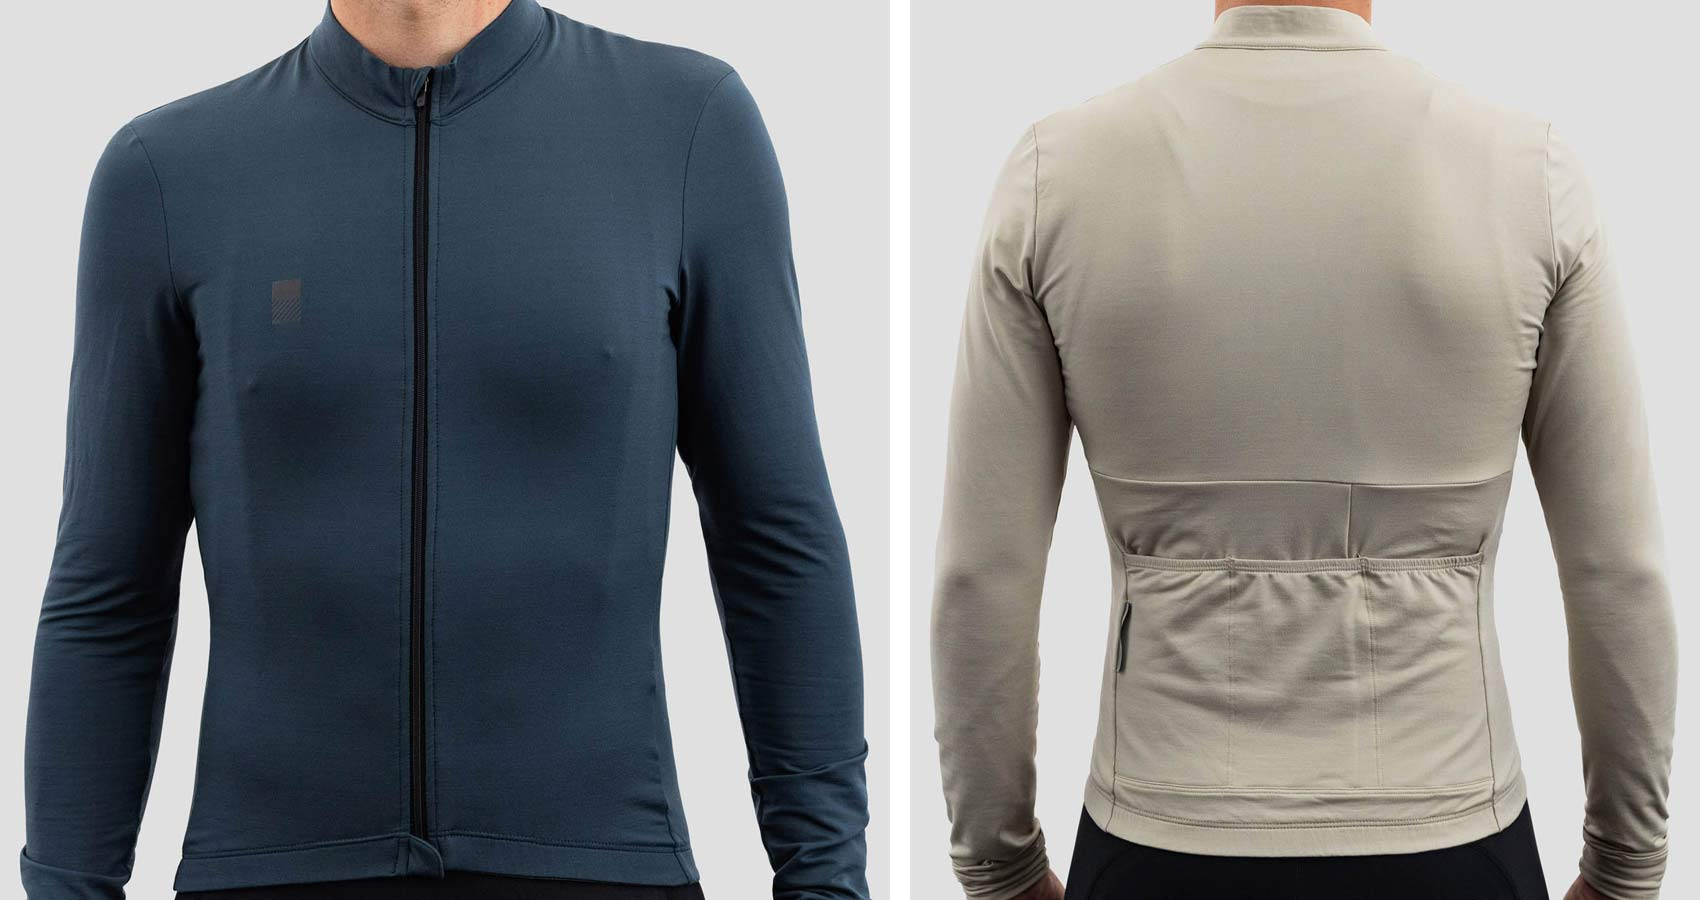 Ornot Power Wool thermal long sleeve jersey